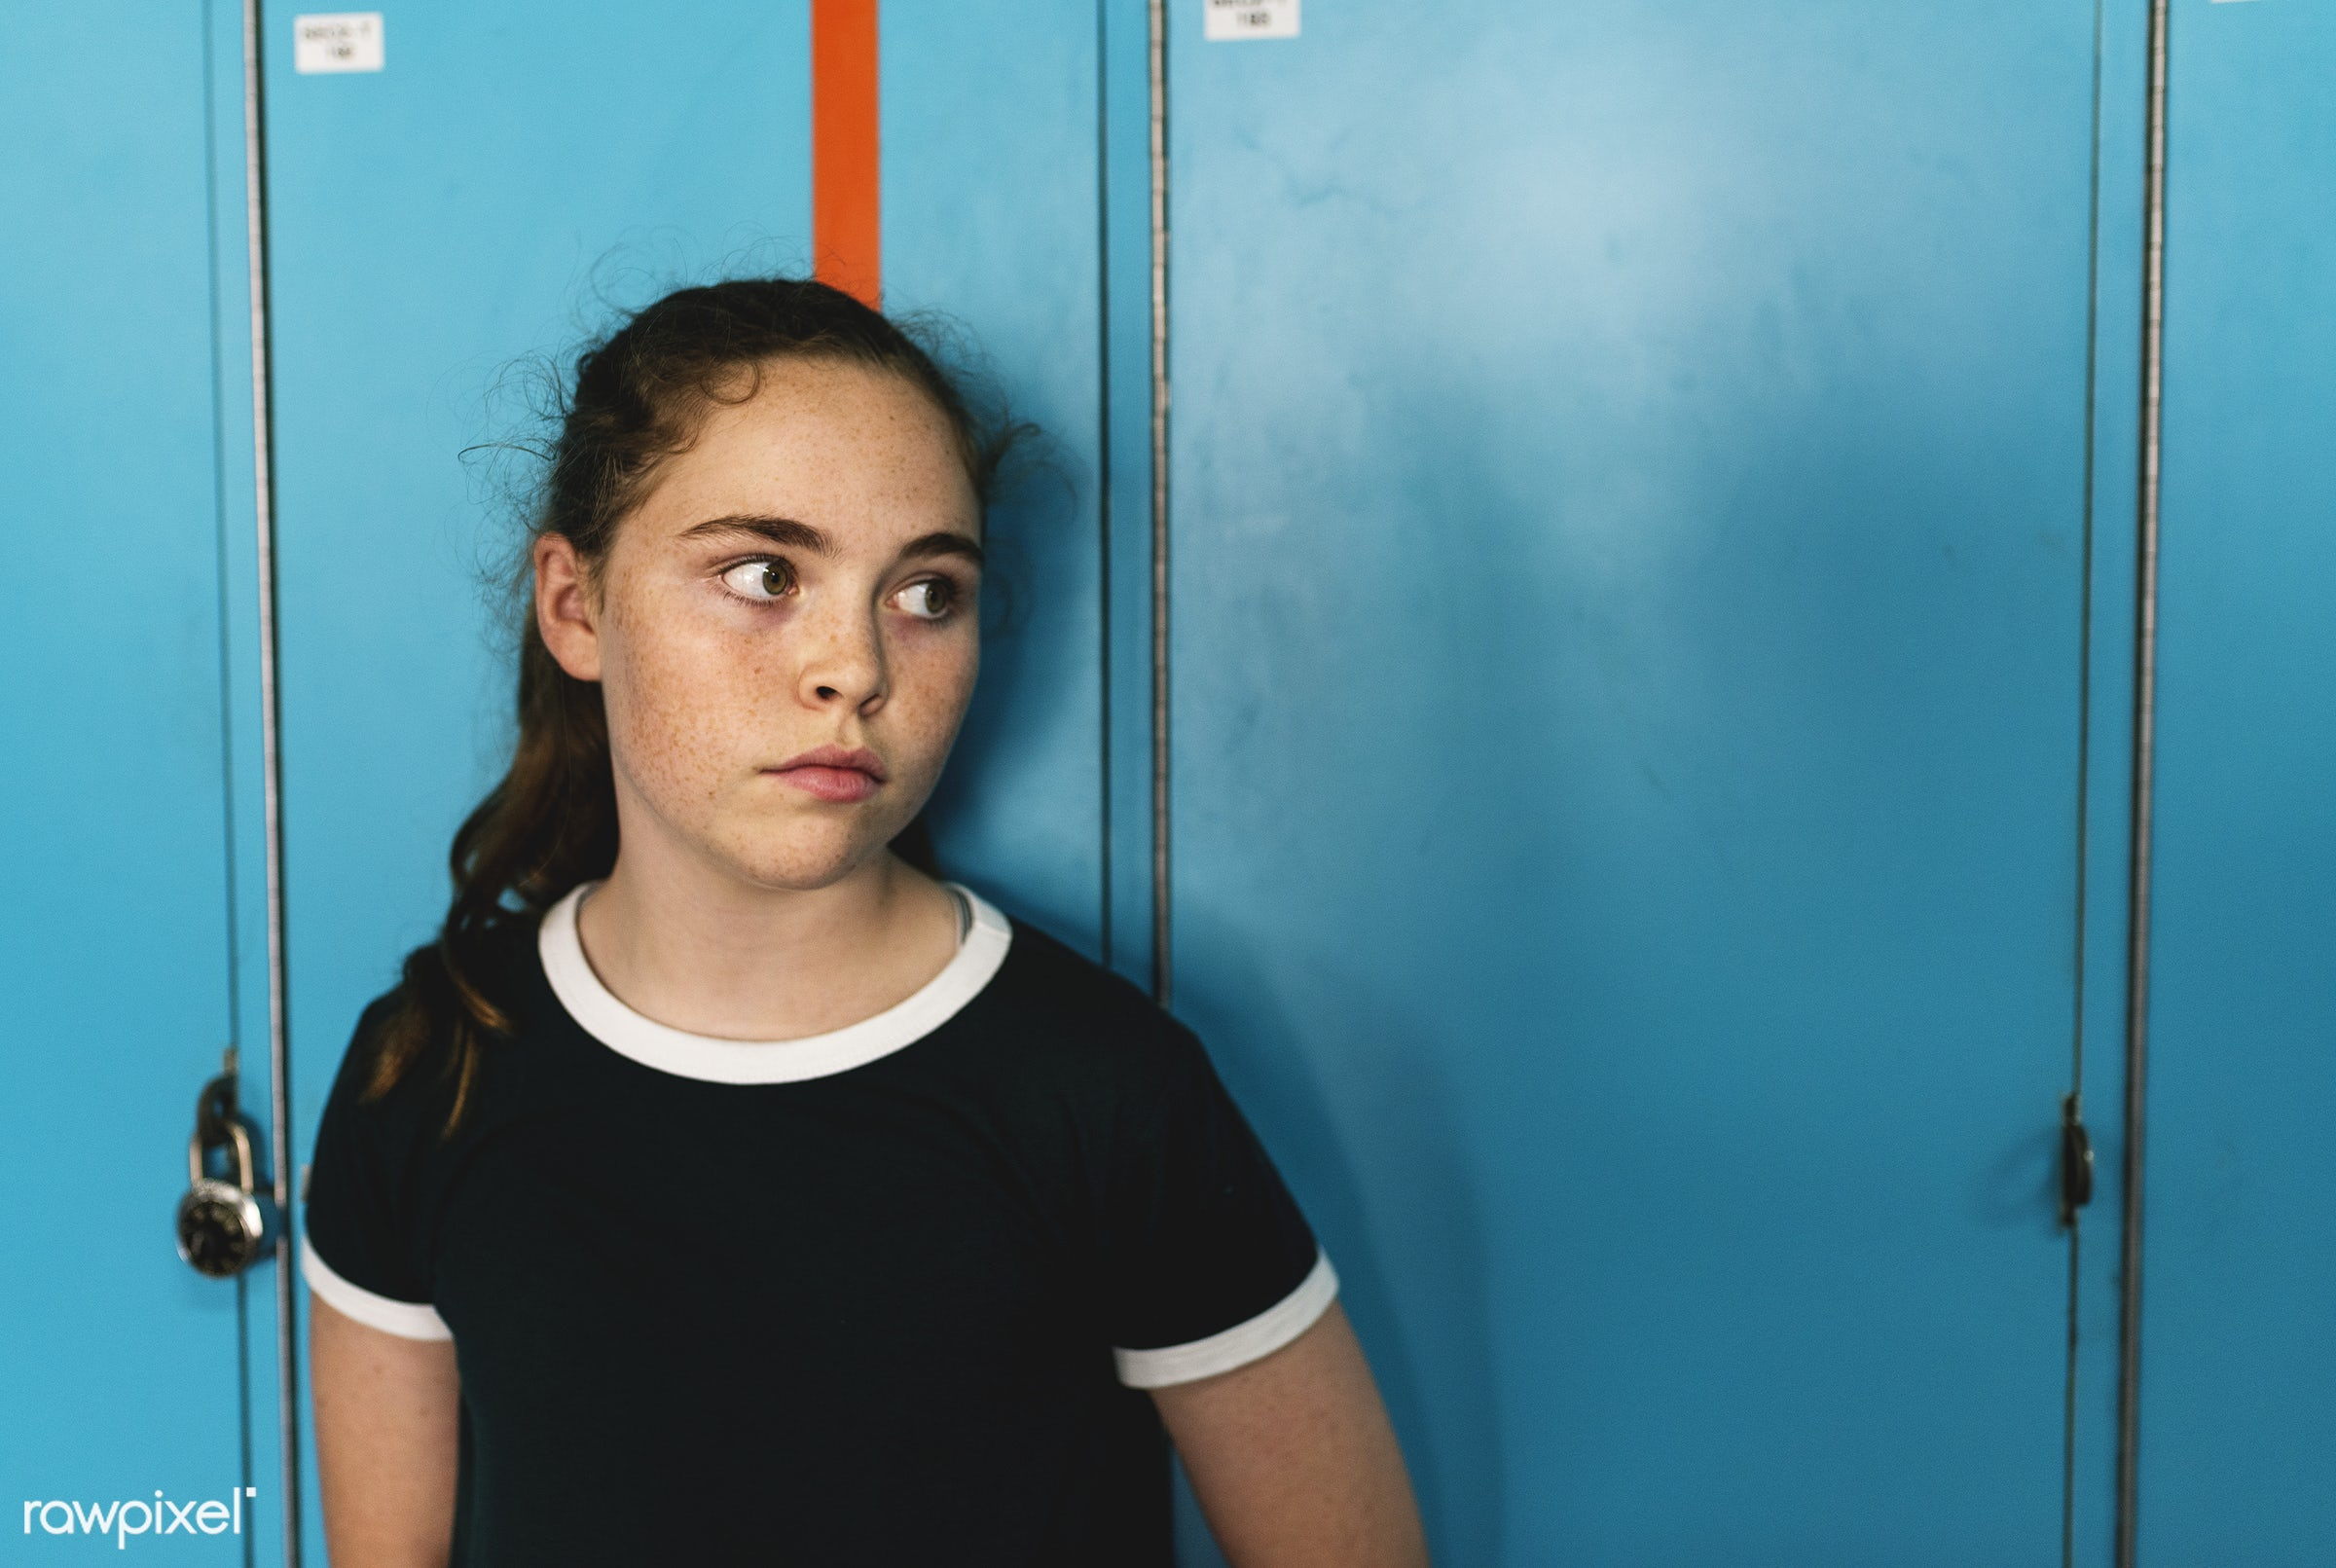 candid, young, caucasian, looking, staring, girl, student, adolescent, casual, freckles, standing, alone, lockers, wide-eyed...